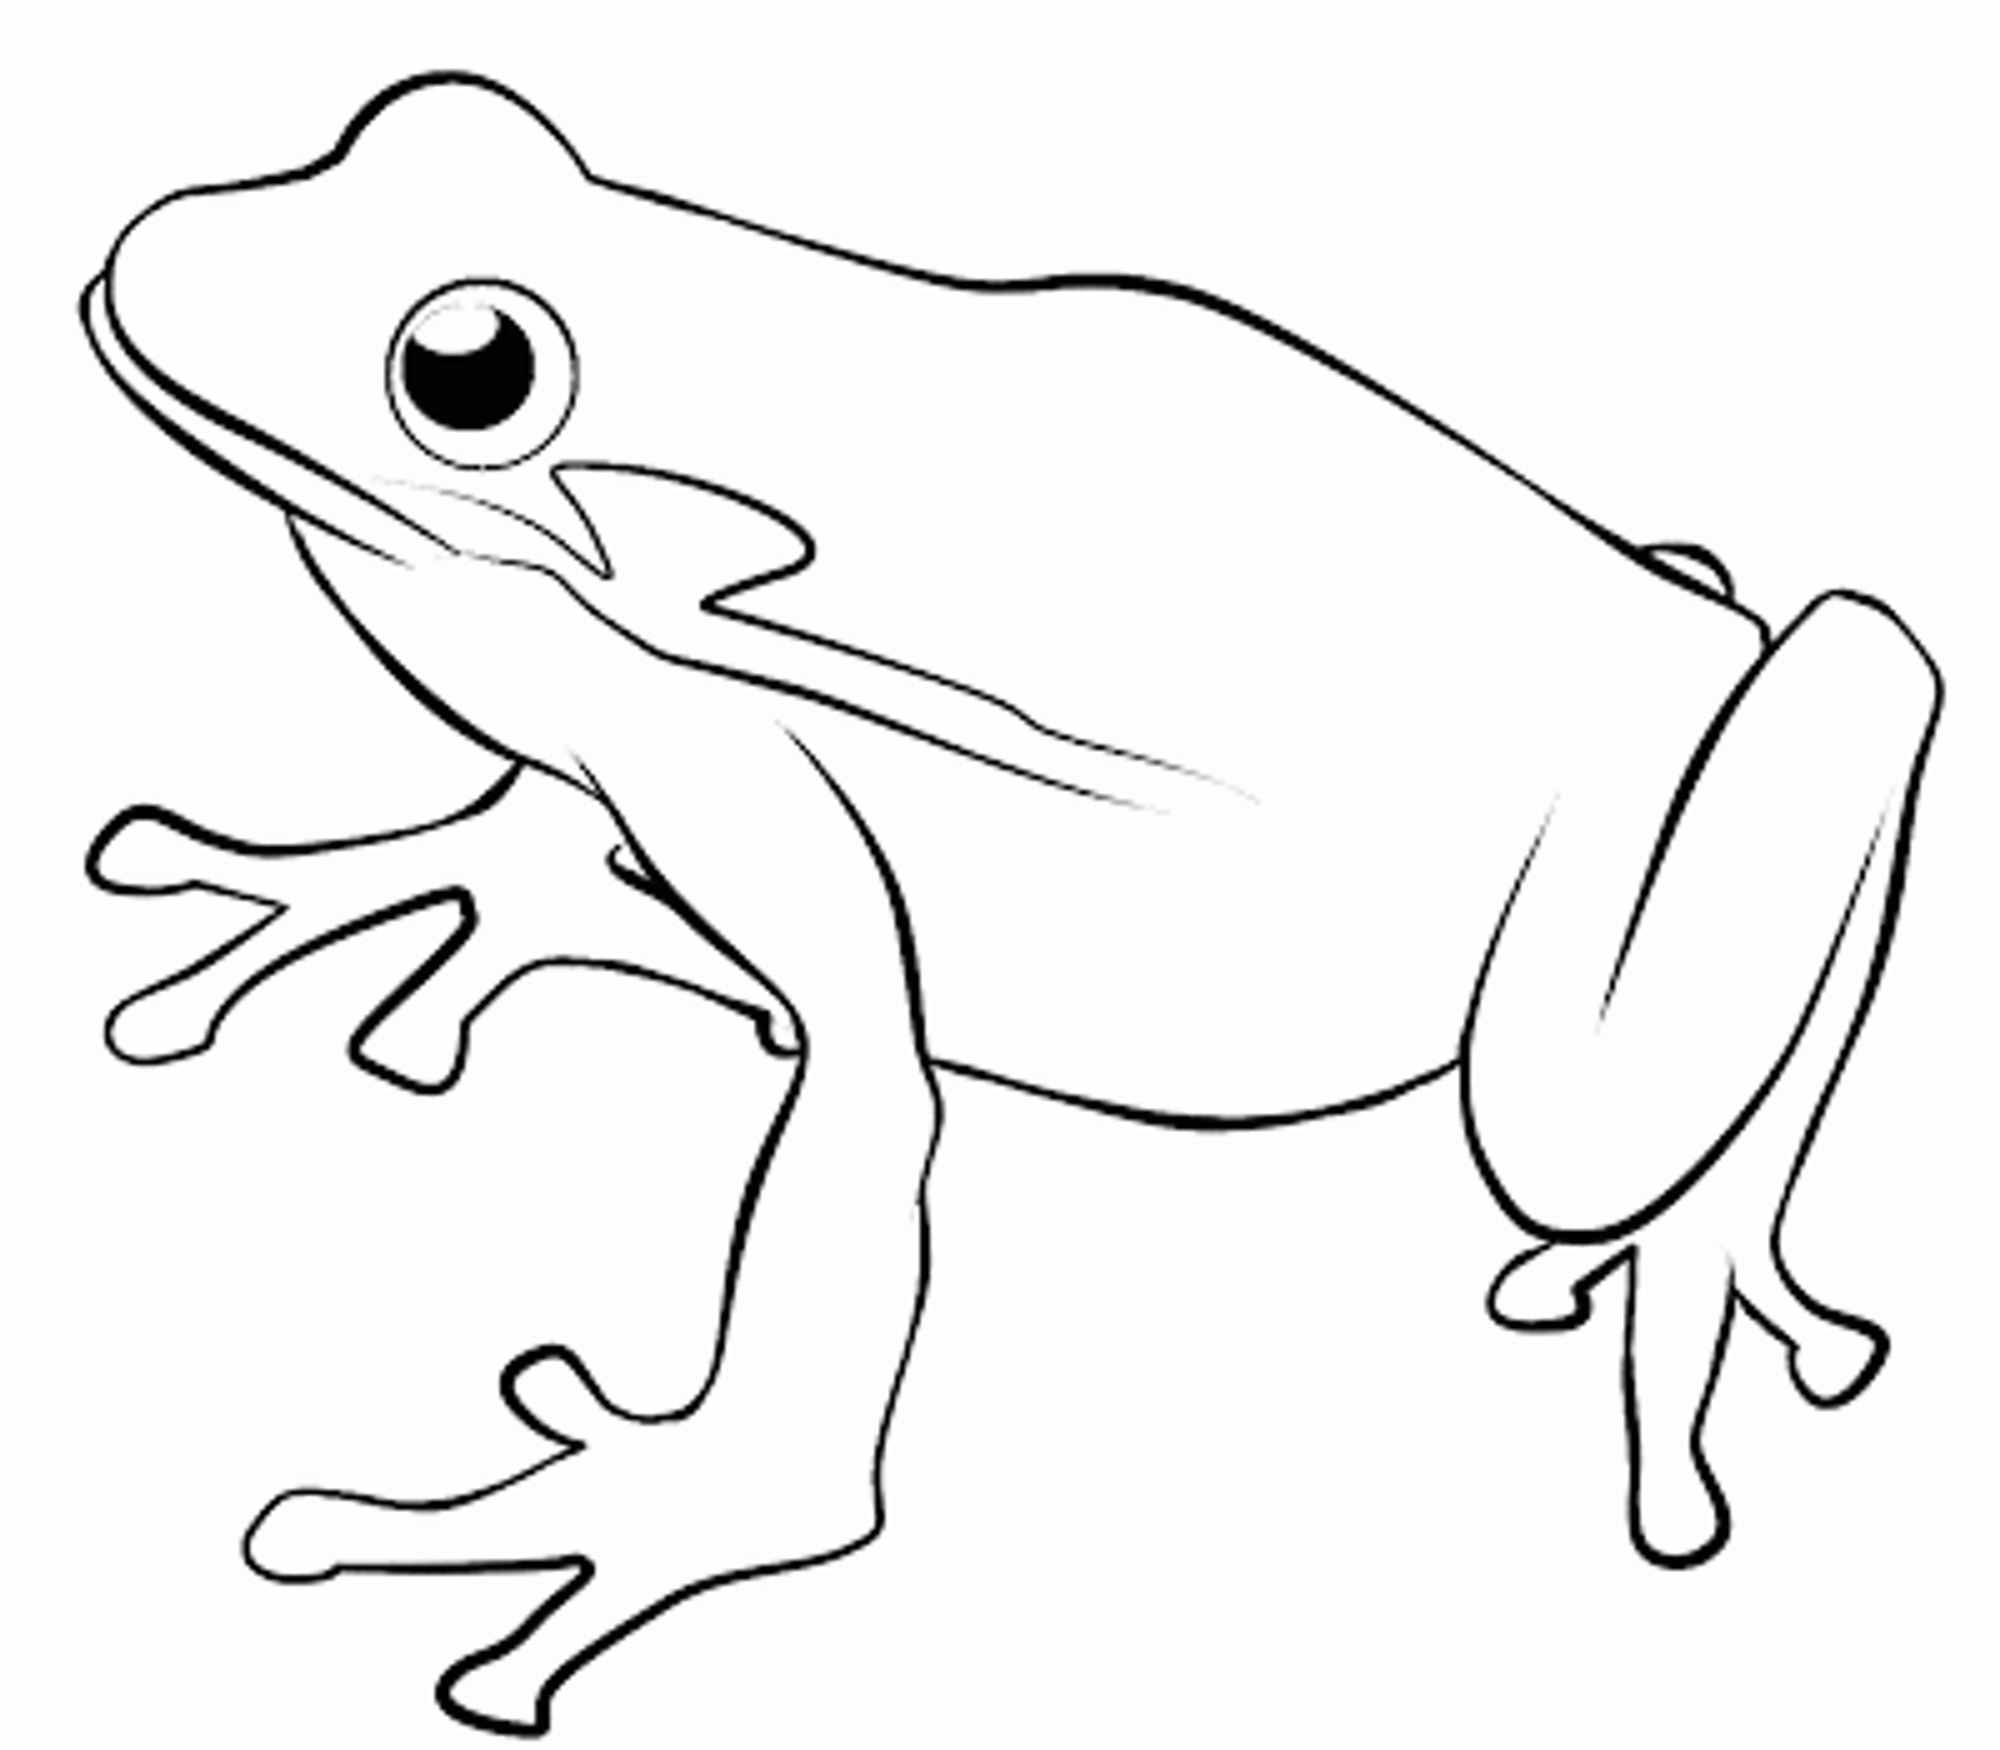 frog drawings tree frog drawing by bob manthey drawings frog